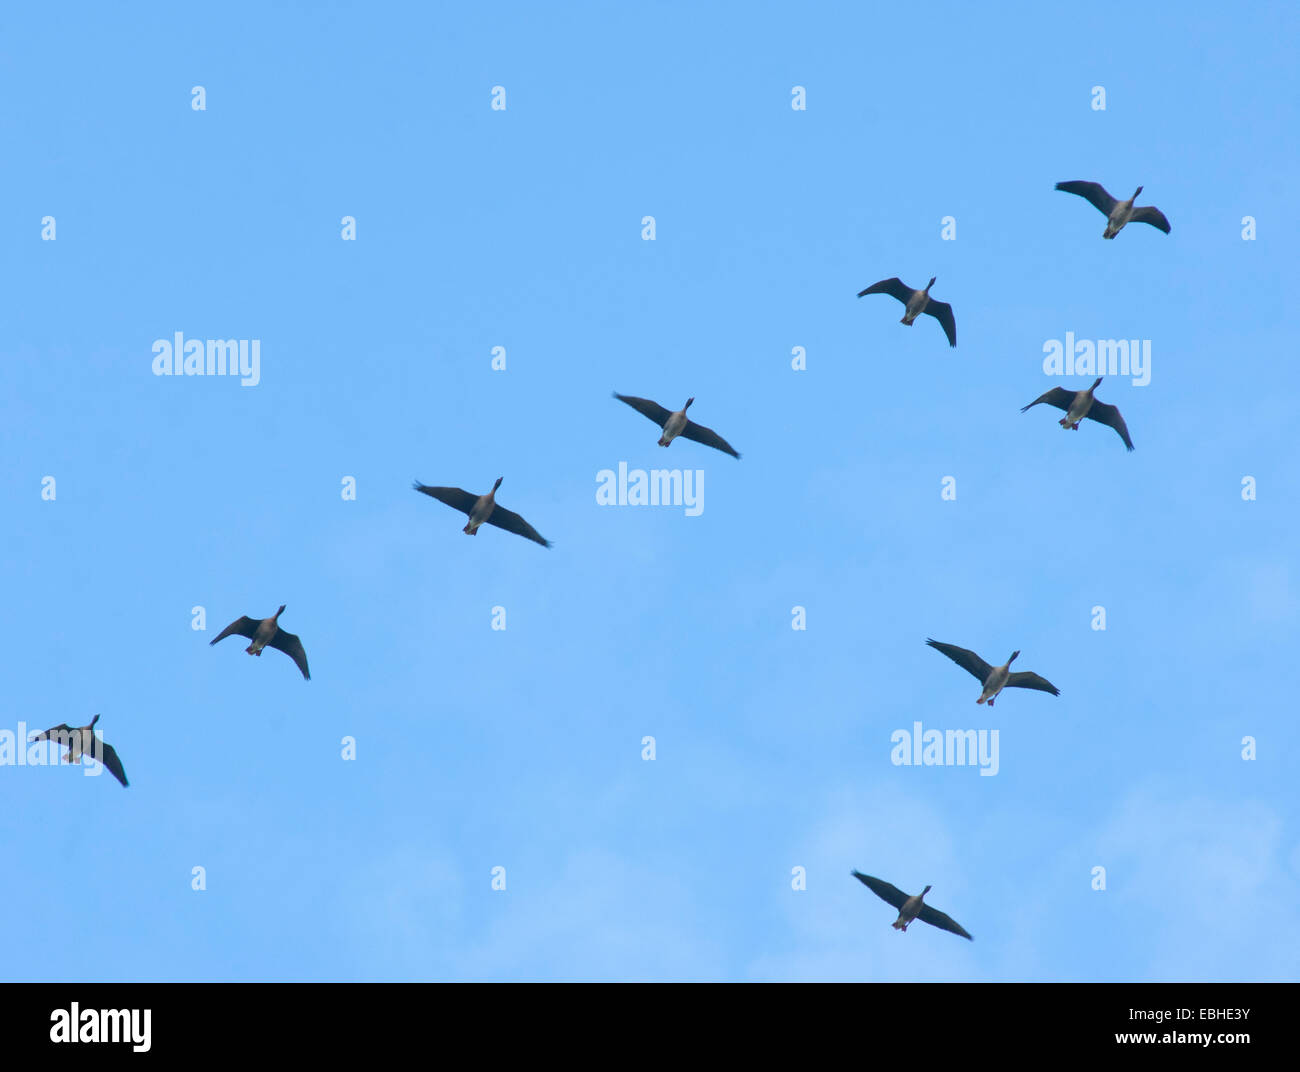 Formation of migrating geese - Stock Image